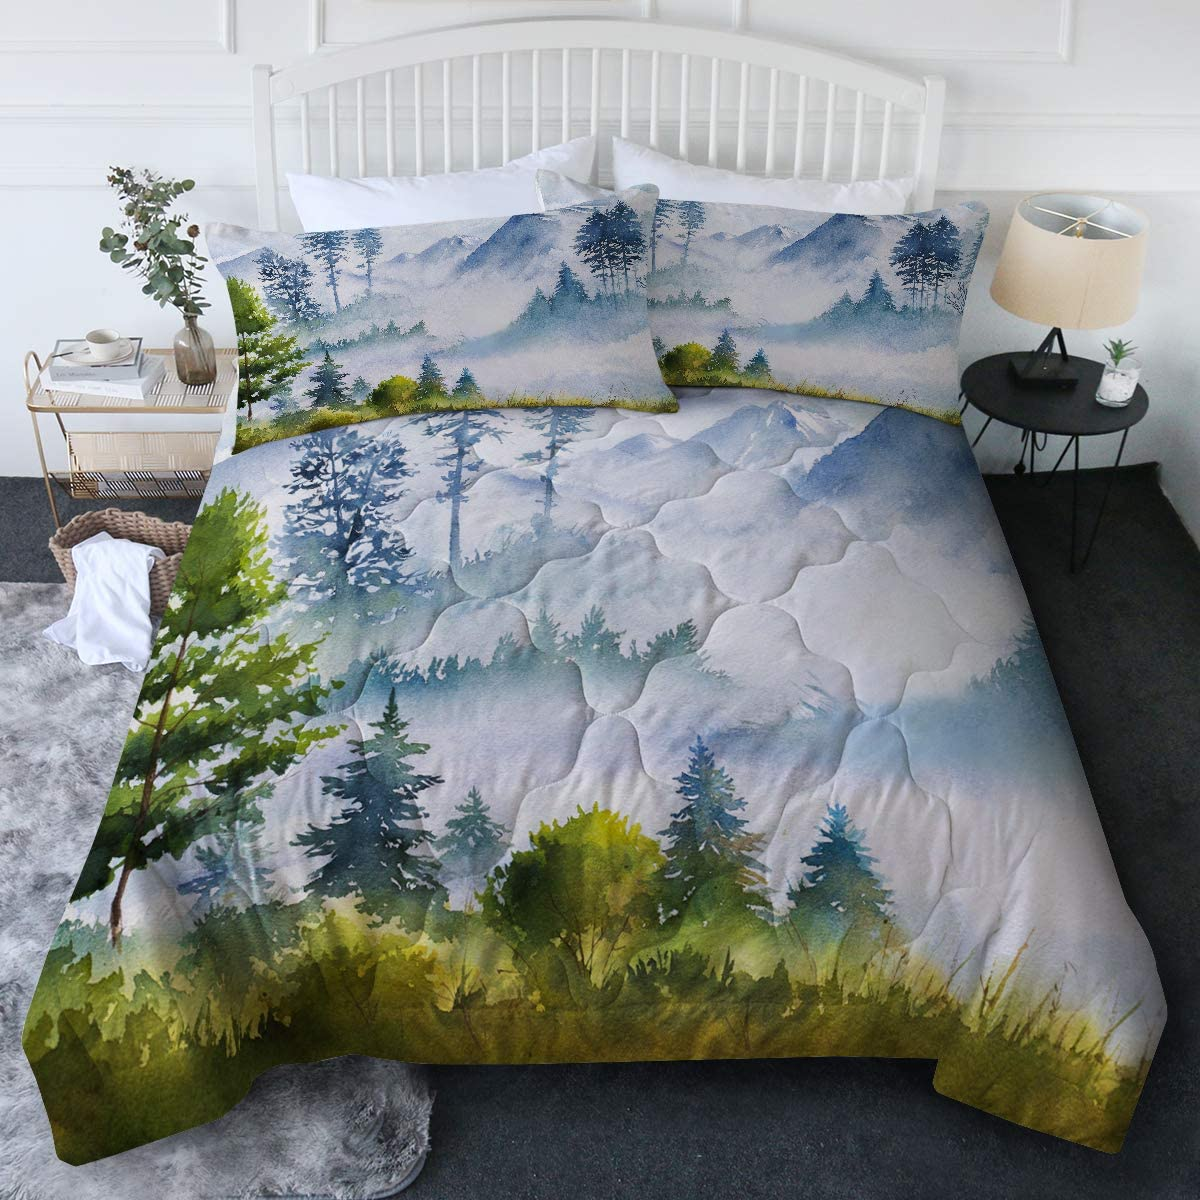 Amazon Com Blessliving 3 Piece Mountain Comforter Set With Pillow Shams Modern And Urban 3d Printed Bedding Set Reversible Comforter Twin Twin Xl Size Soft Comfortable Machine Washable Home Kitchen